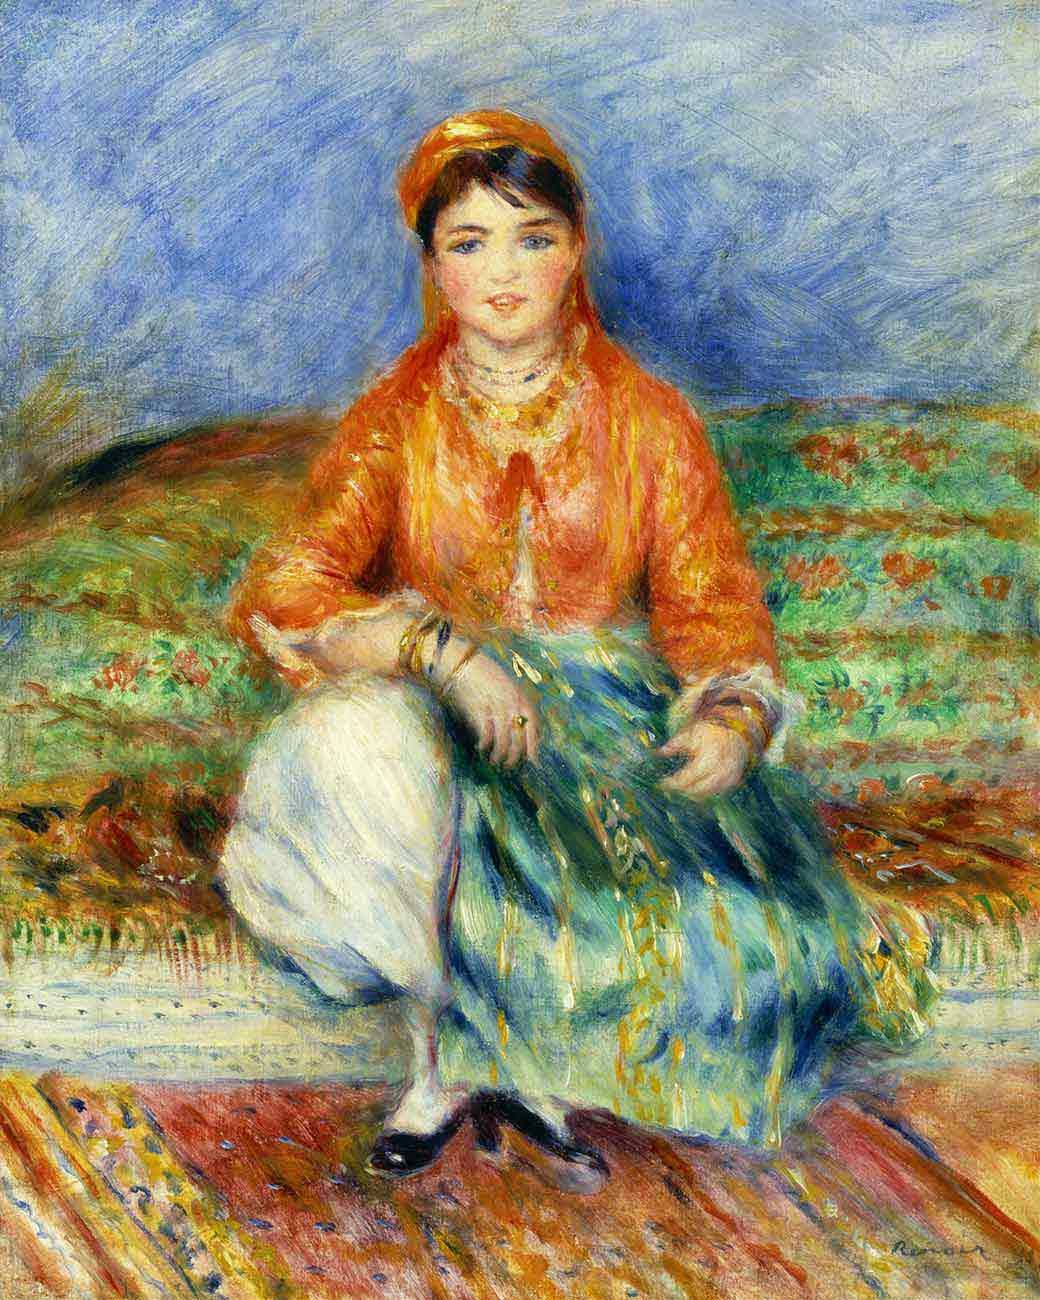 ABOUT THE ARTIST Pierre-Auguste Renoir (1841-1919) Movement: Impressionism Even though he is considered to be an impressionist, he very soon developed his own un-Impressionist style. Renoir had a very distinct and instantly recognizable way of painting women – with pinkish skin and blushed cheeks. He painted from life, his friends assisted him. His works have …